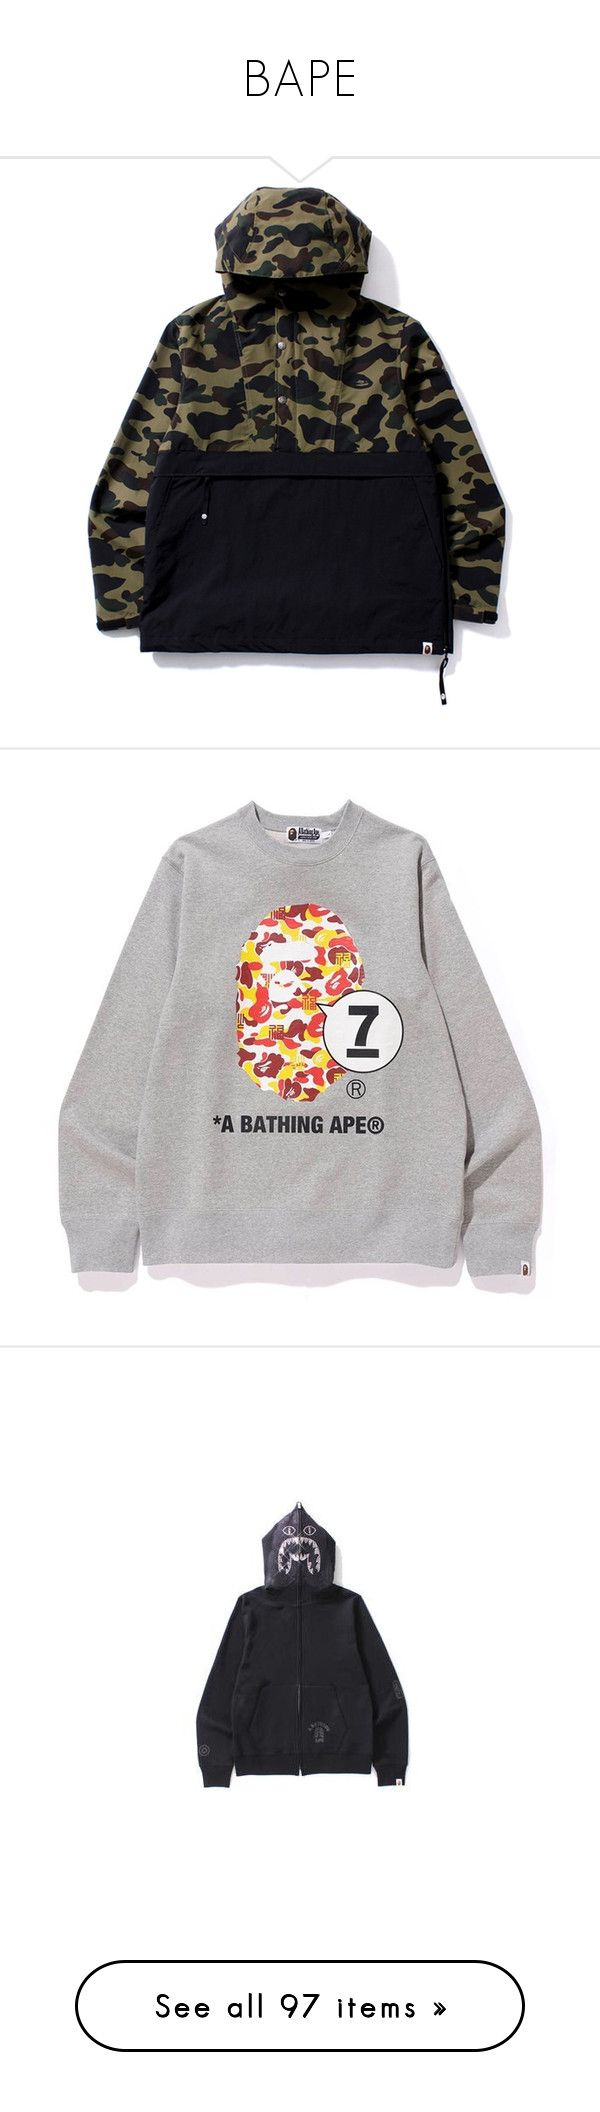 """BAPE"" by kycstyle ❤ liked on Polyvore featuring outerwear, jackets, camouflage jacket, camo jacket, pullover jacket, sweater pullover, camo print jacket, tops, hoodies and long sleeve hoodie"